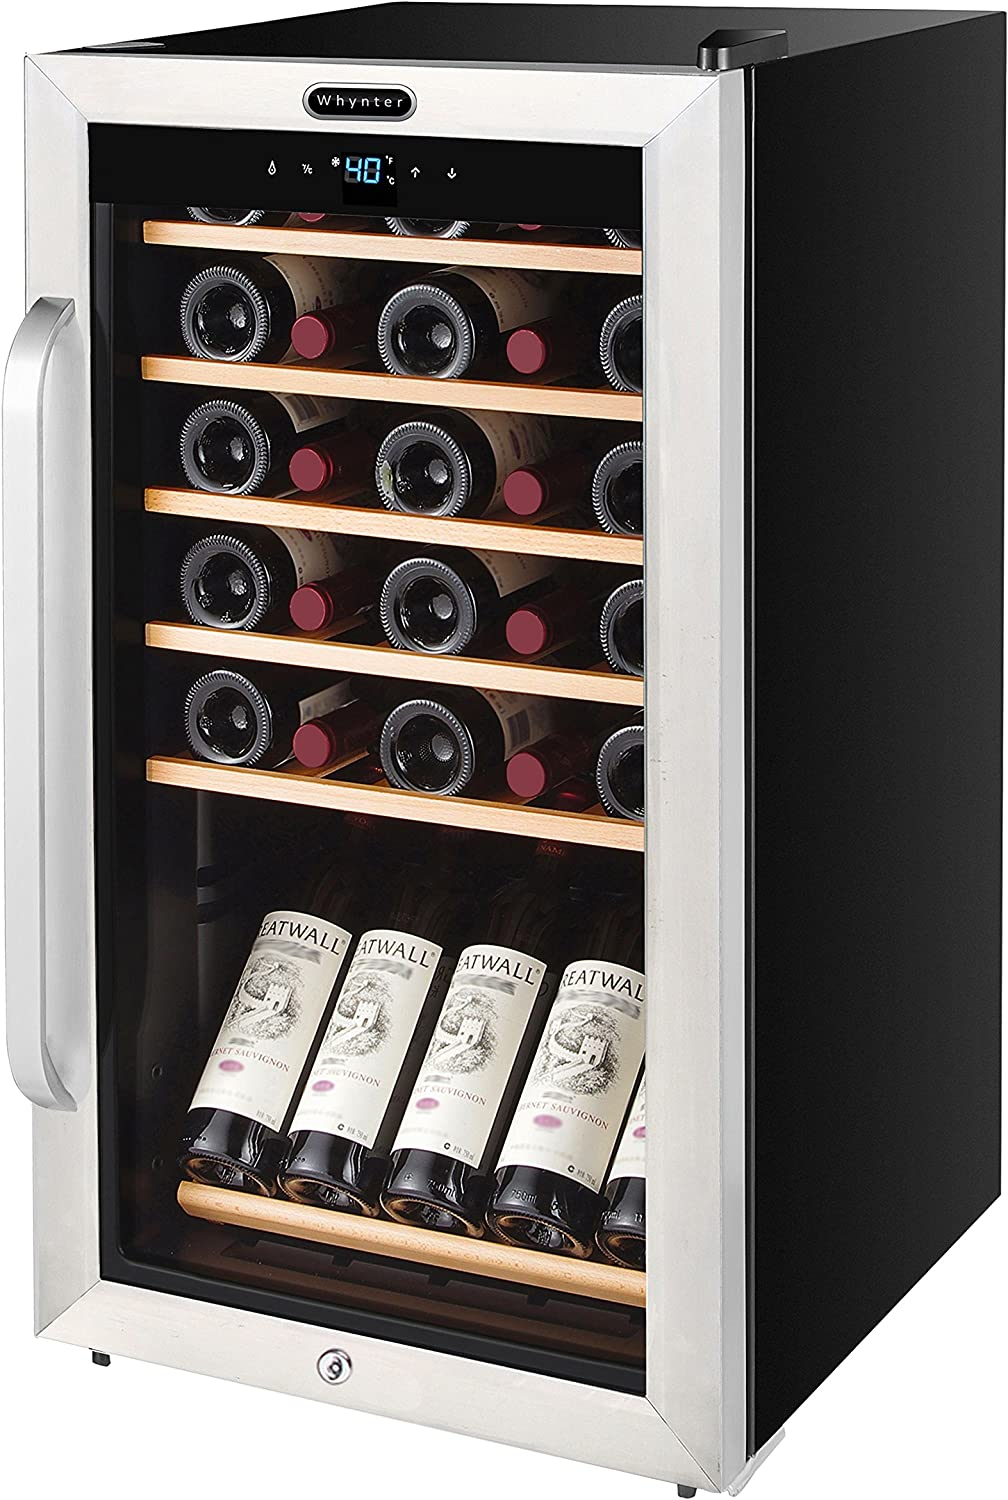 91S%2BY2wHc7L. AC SL1500 The Best Beer Fridge for 16 Oz Can 2021 (Review)